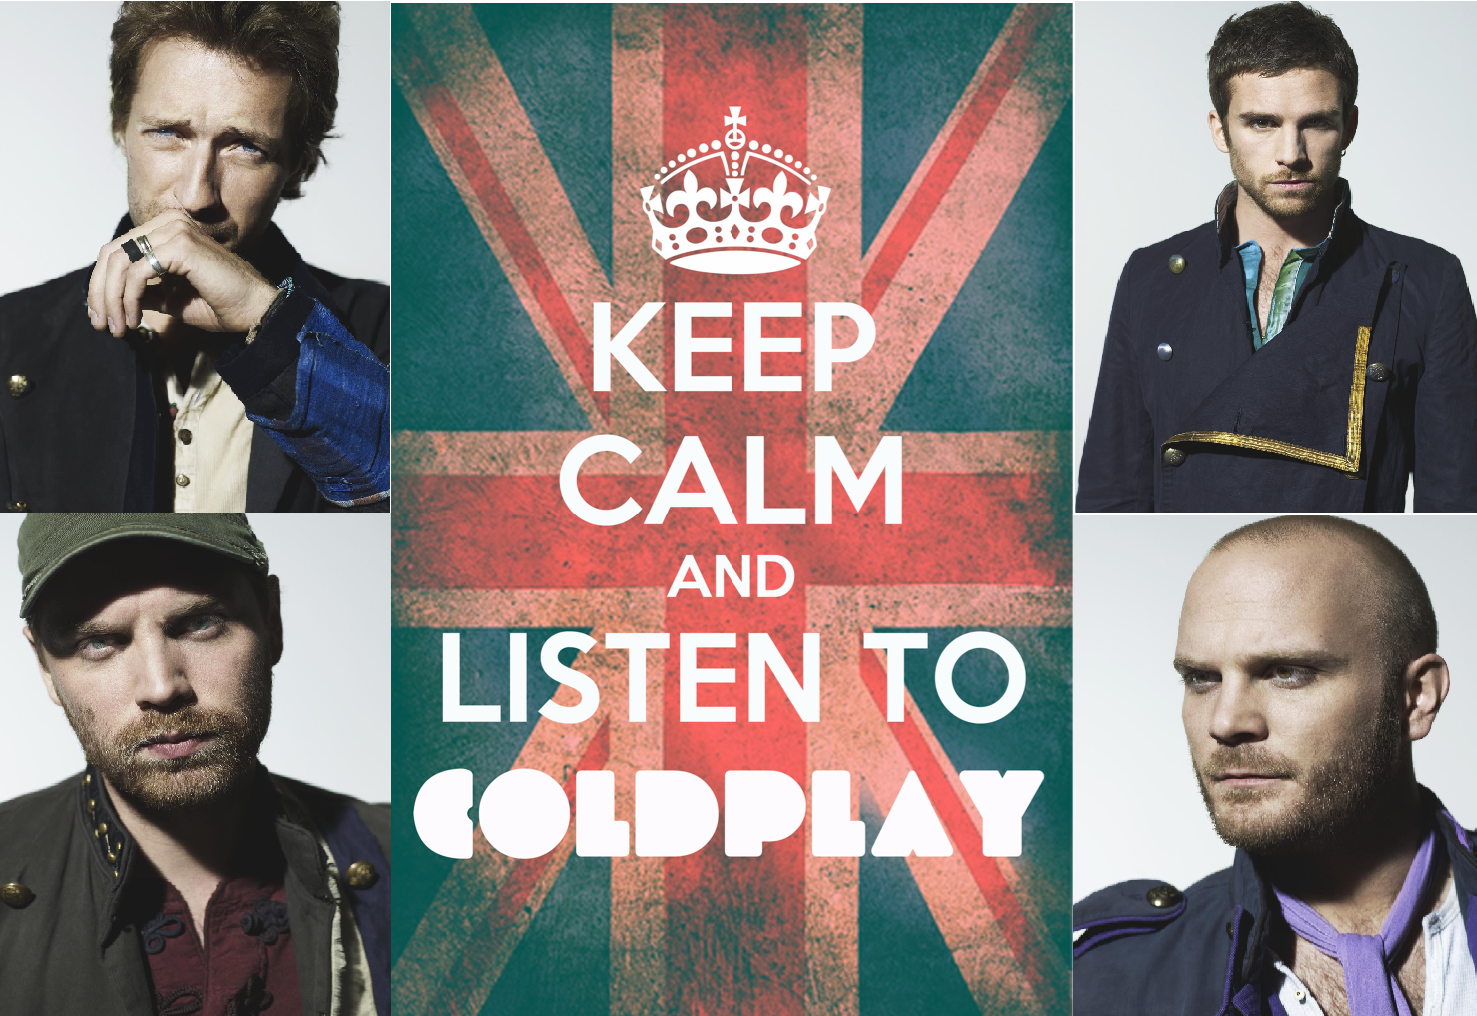 Stay Calm and Listen to Coldplay